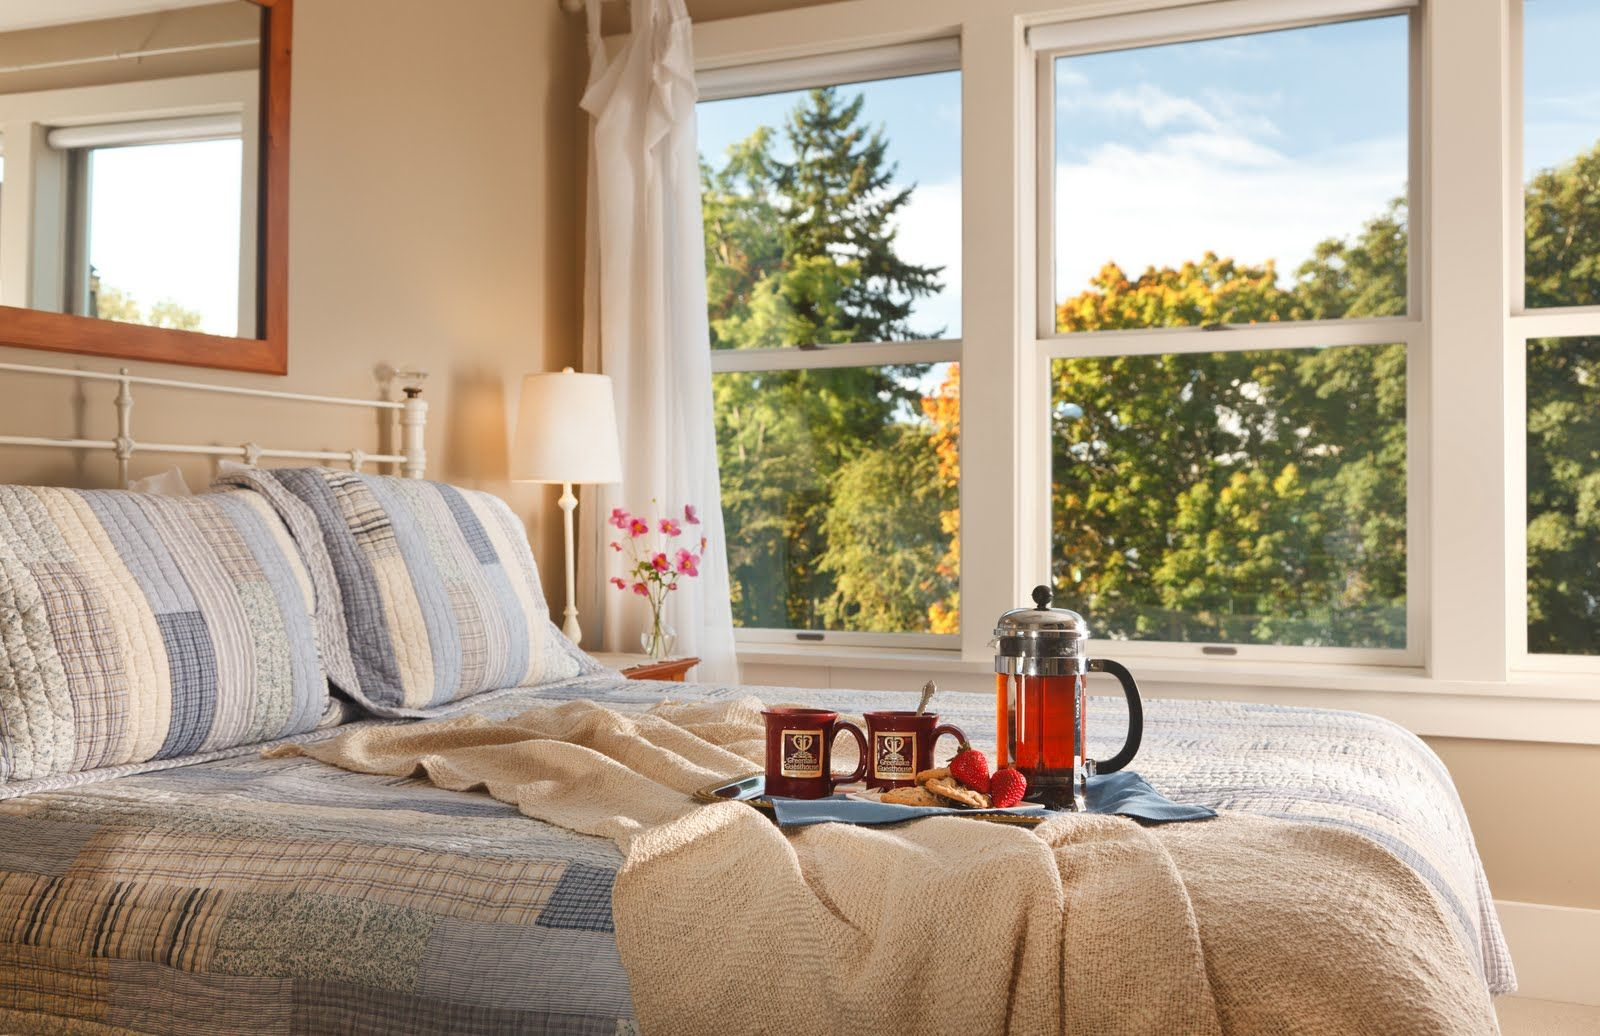 blog inn availability reservations make in our for and seattle home header htm breakfast bed accommodations